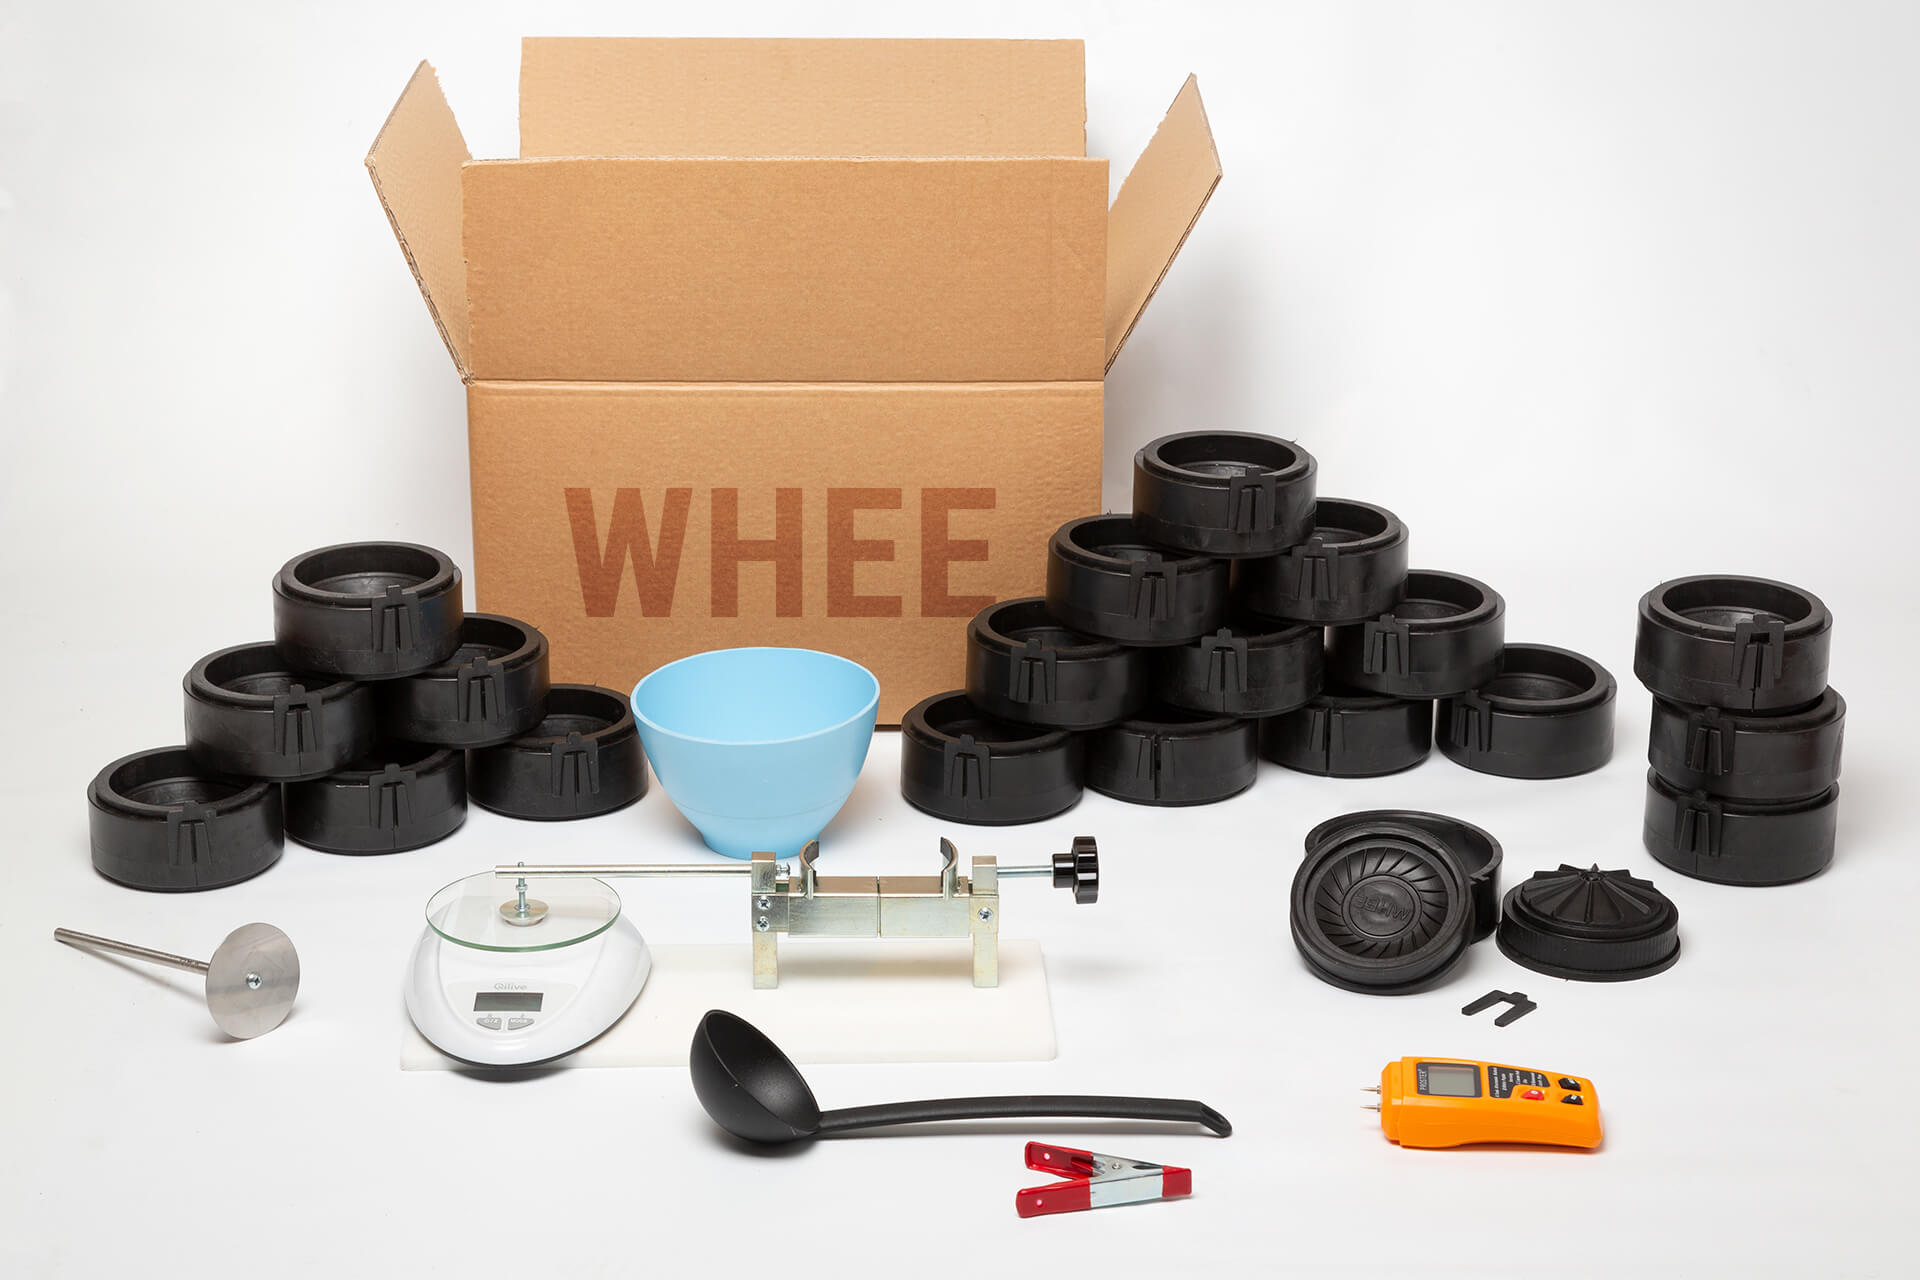 Kit WHEE by Master Srl Torino (Italy) | www.wheetarget.com  Landing WHEE WPBakery – ENG kit whee con scatola